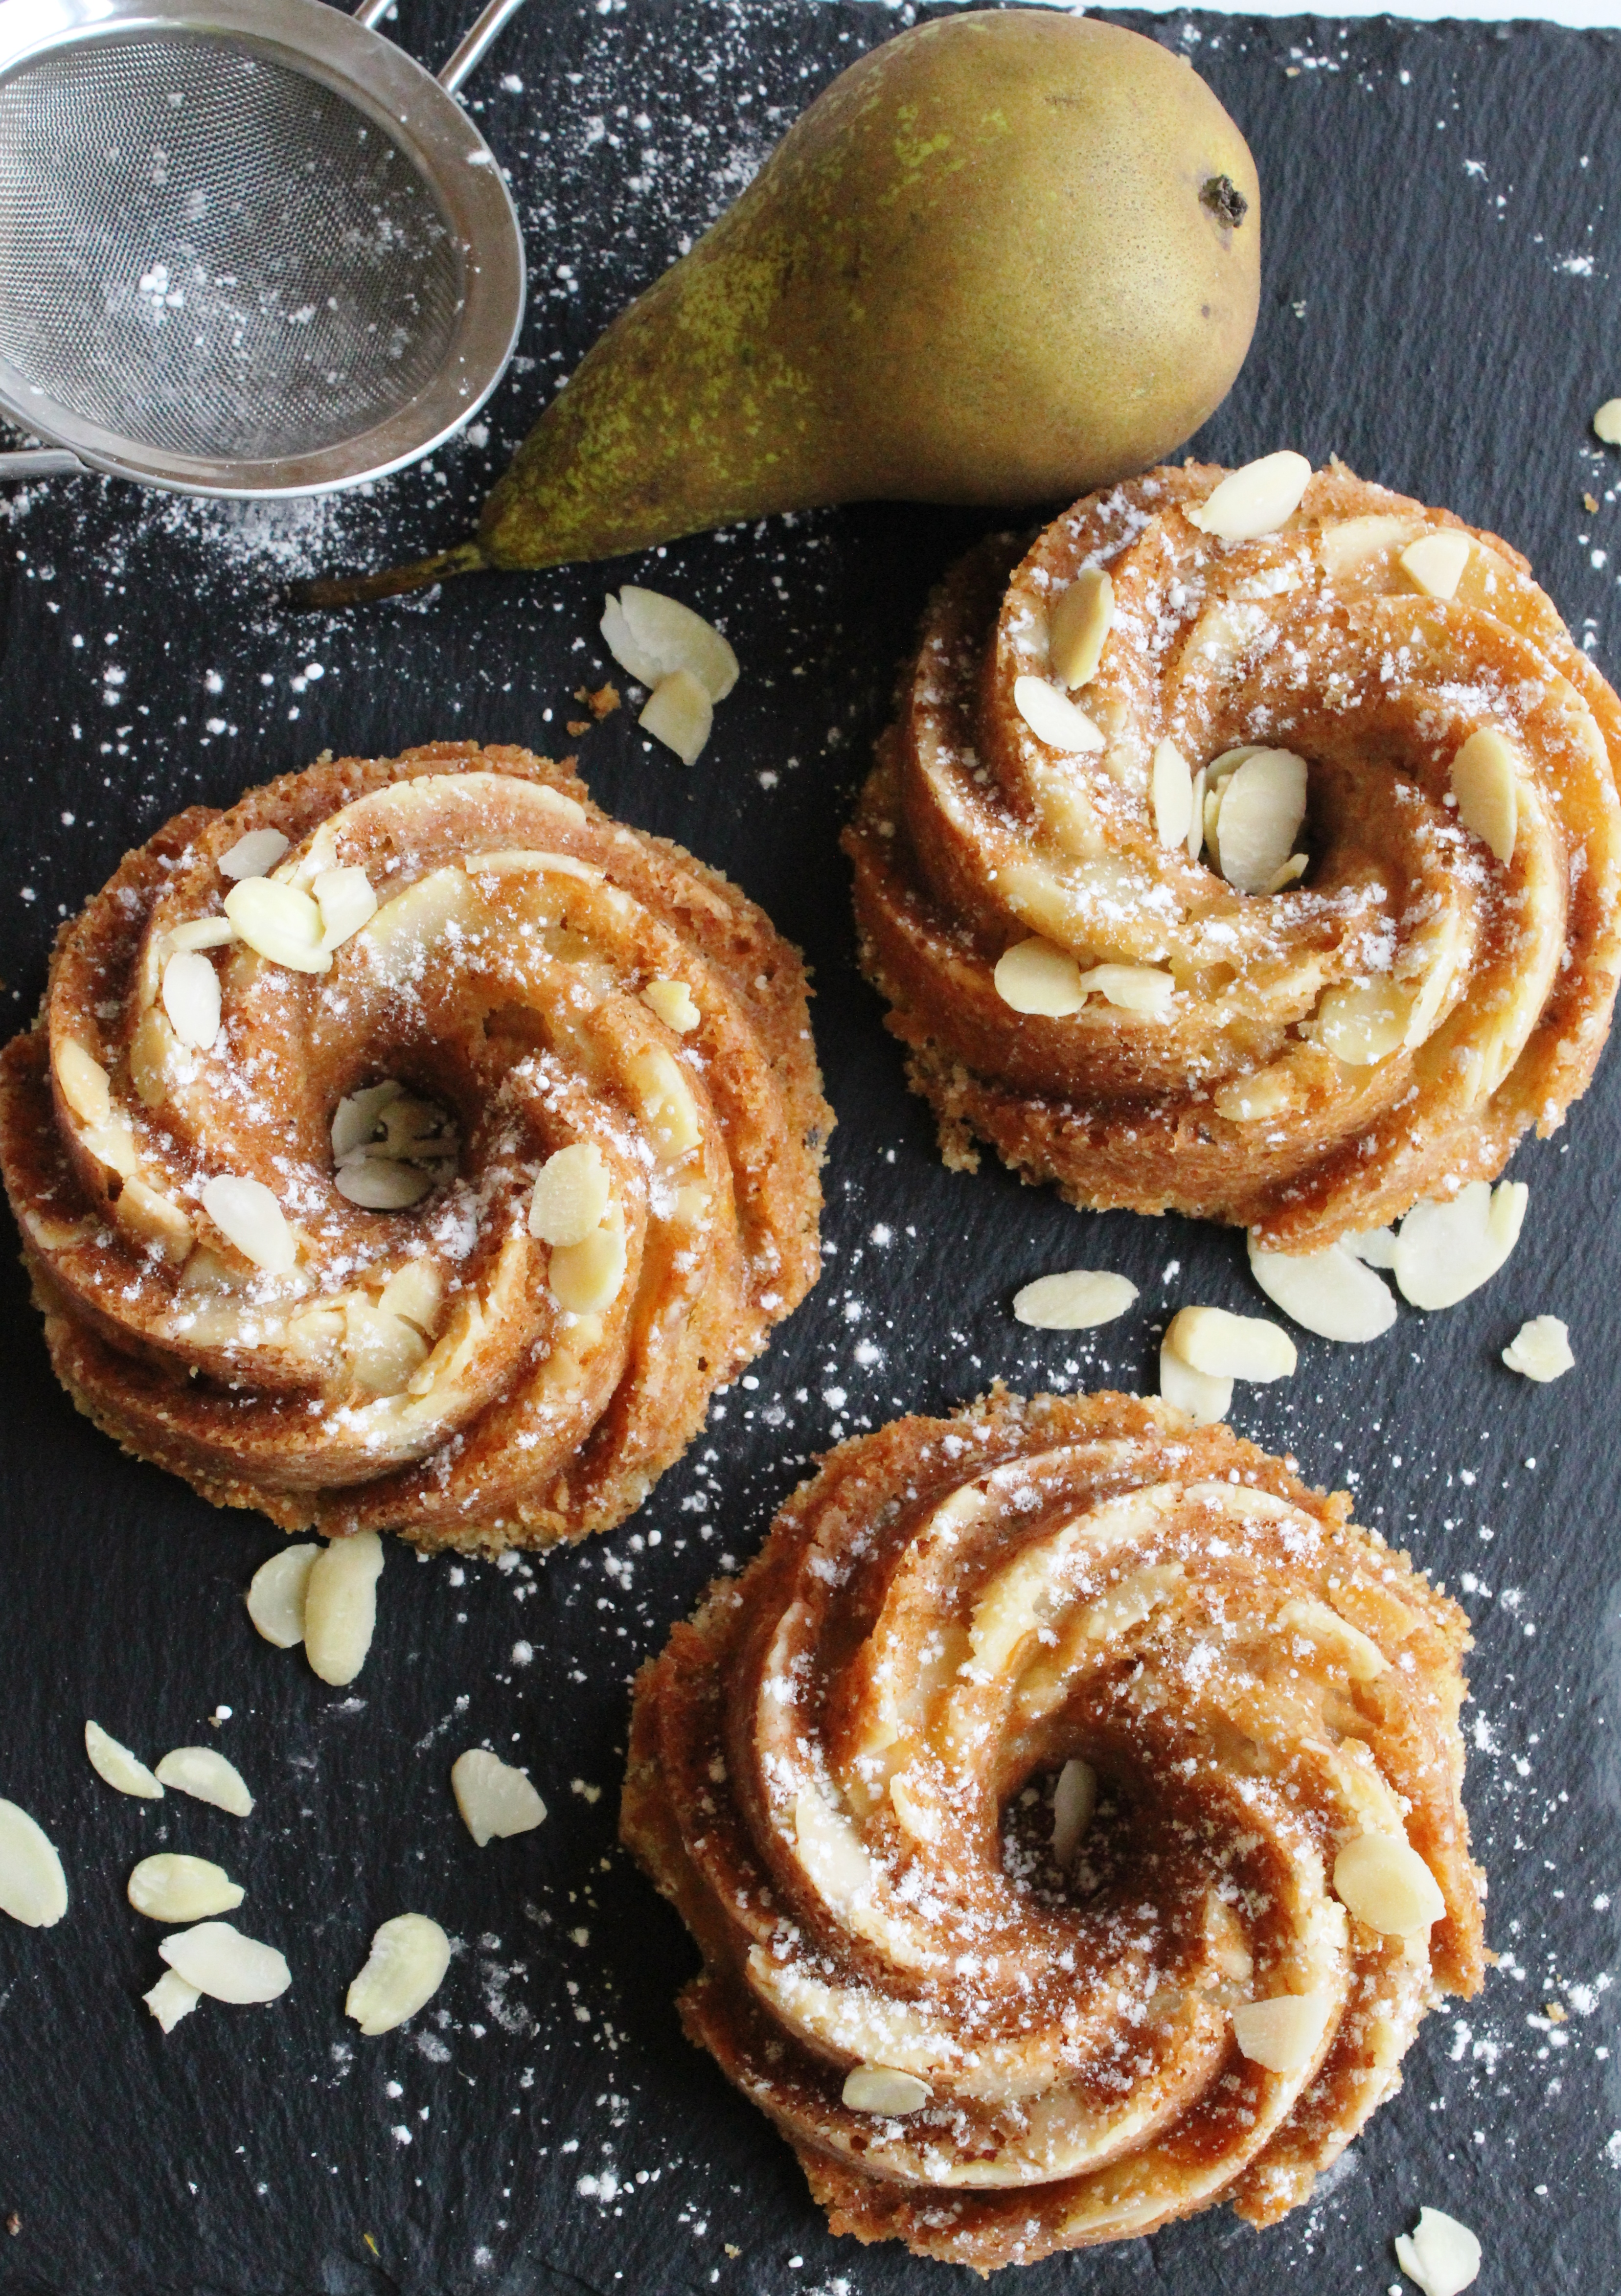 Pear and Cardamon bundt 3